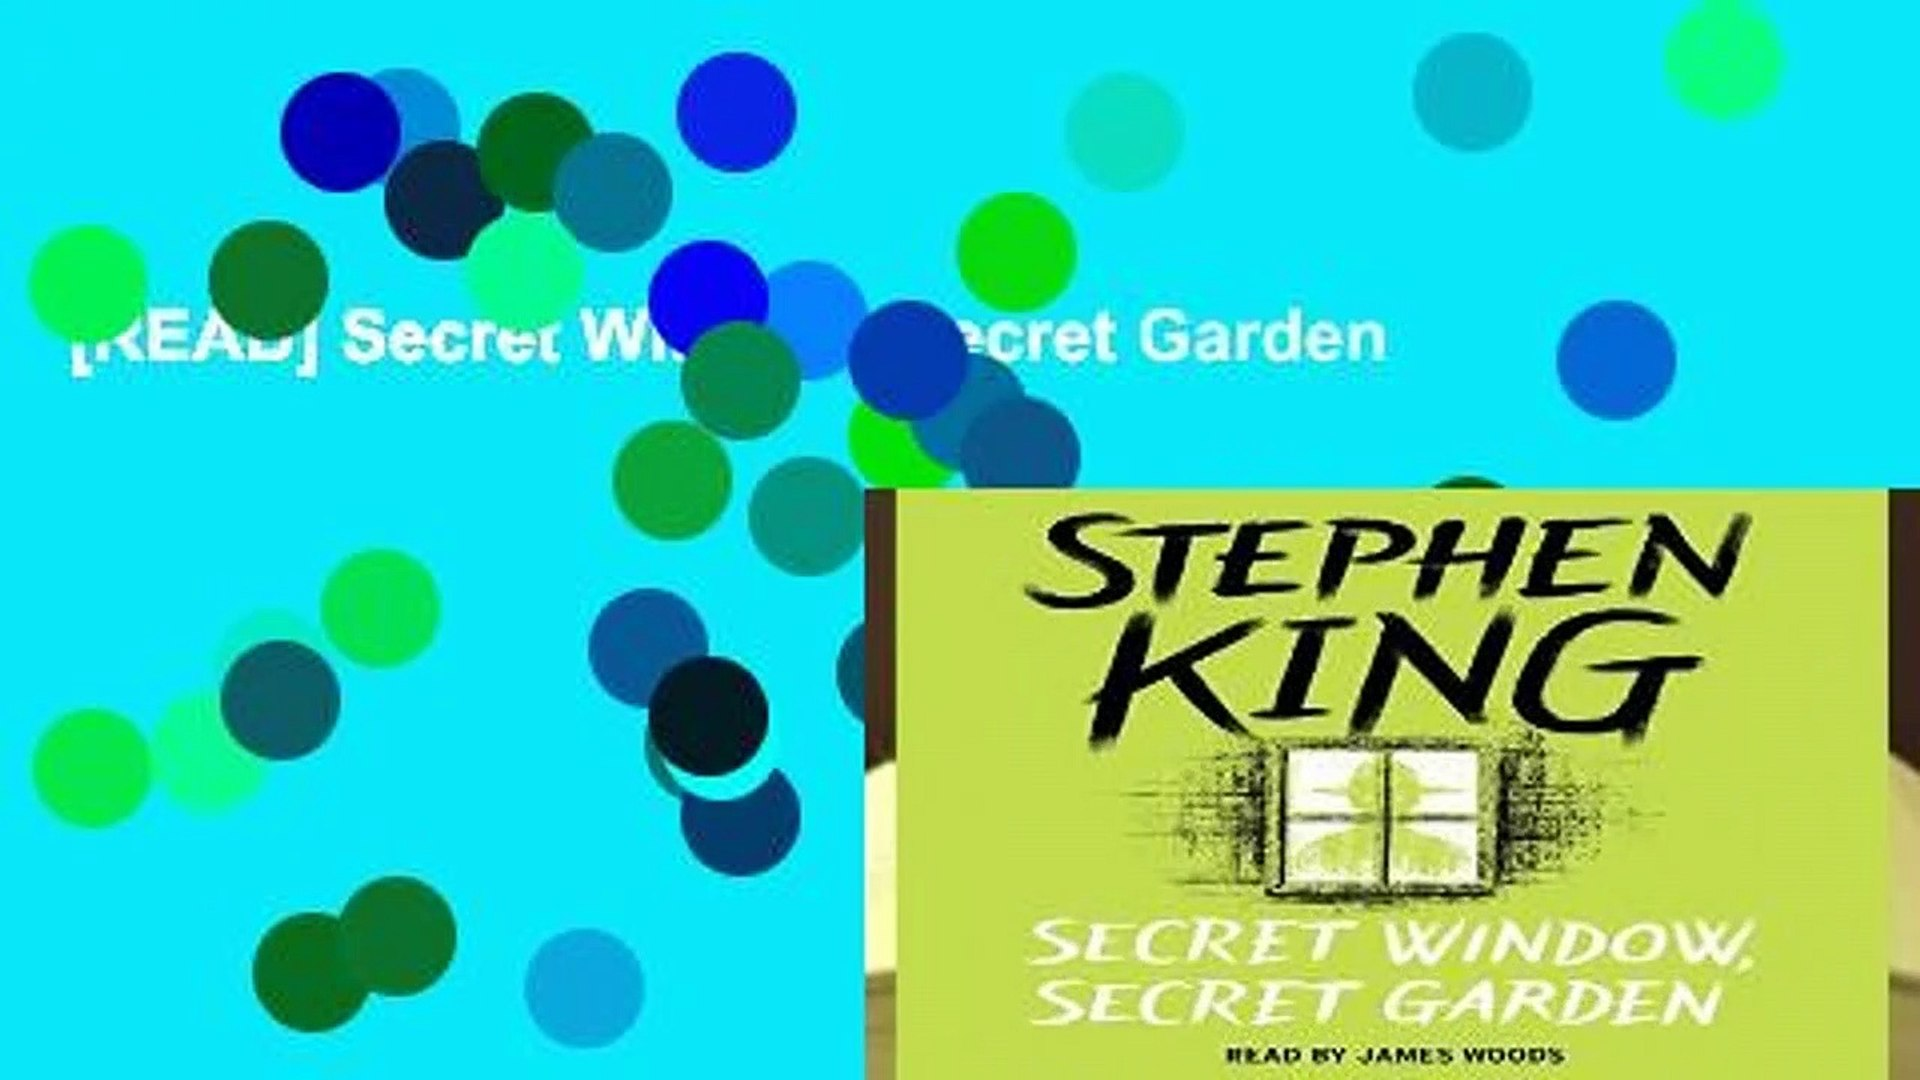 Read Secret Window Secret Garden Video Dailymotion